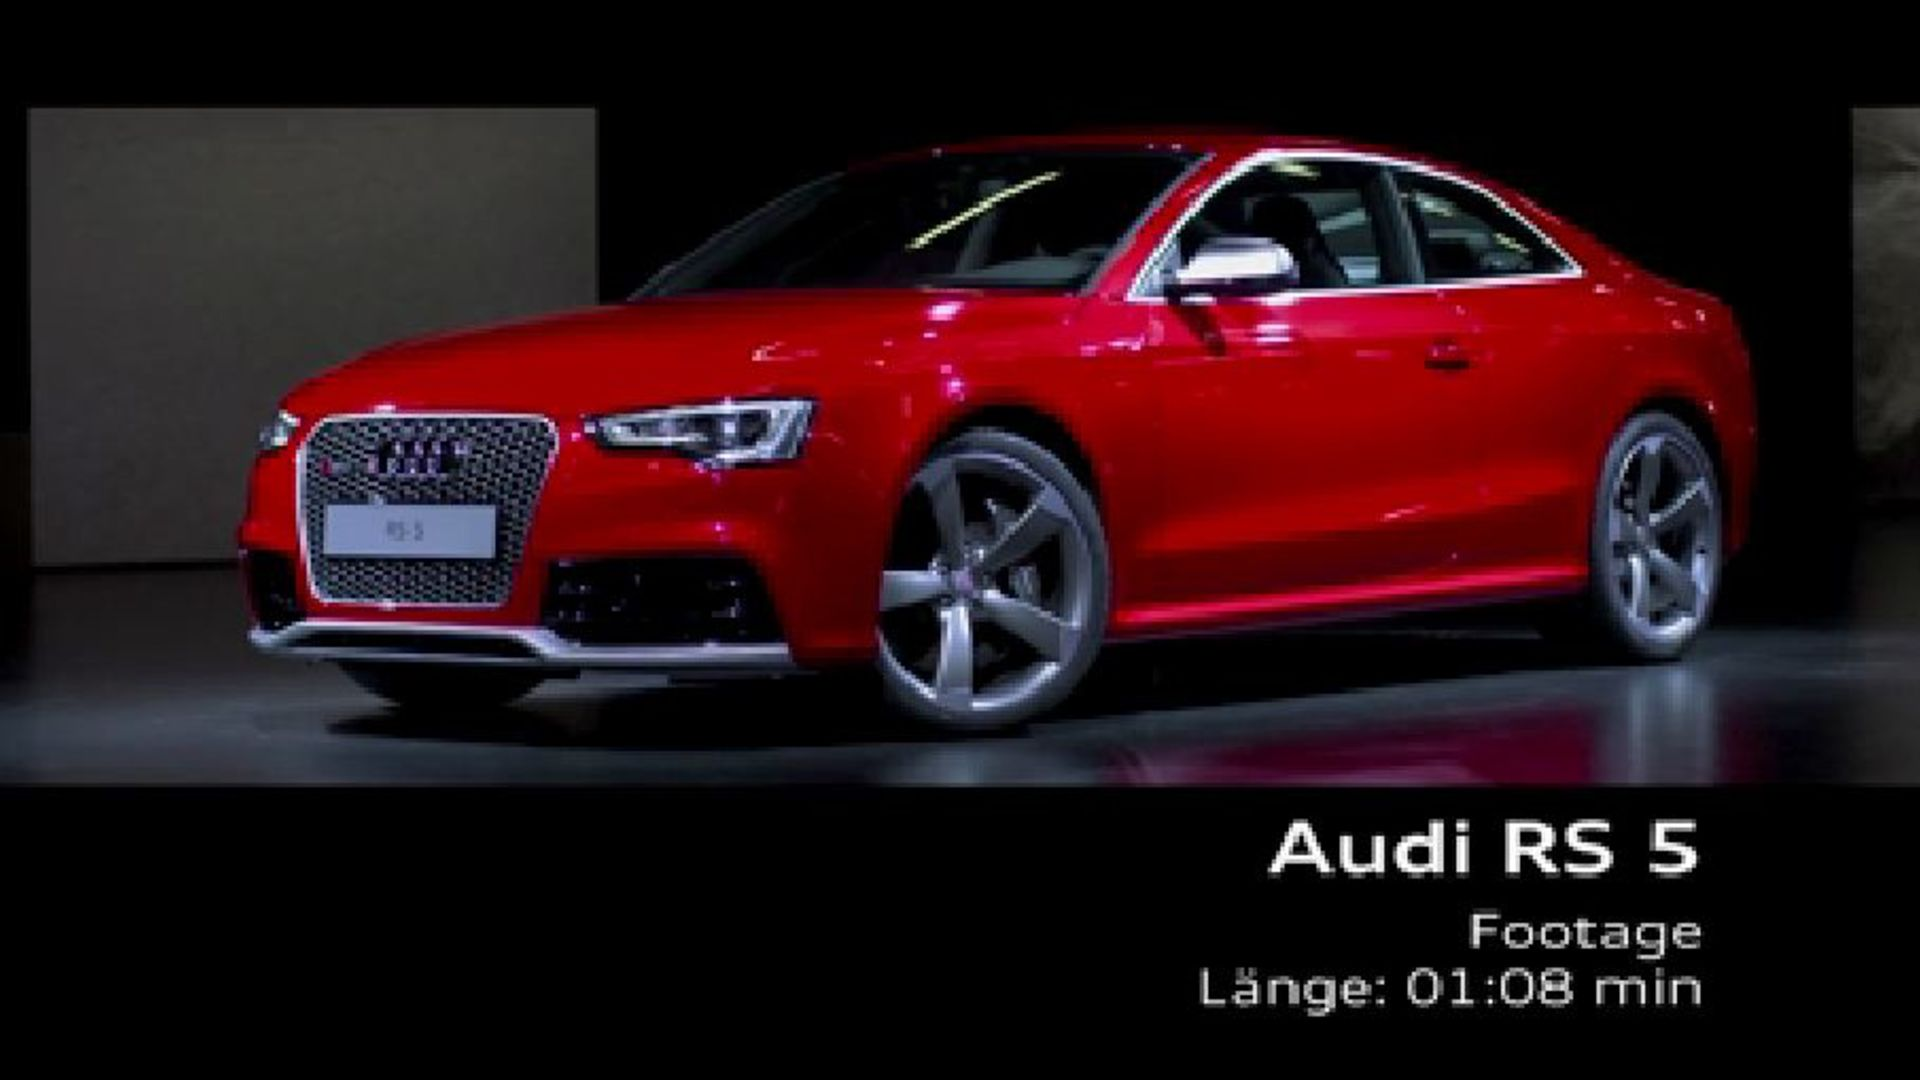 Das Audi RS 5 Coupé - Footage